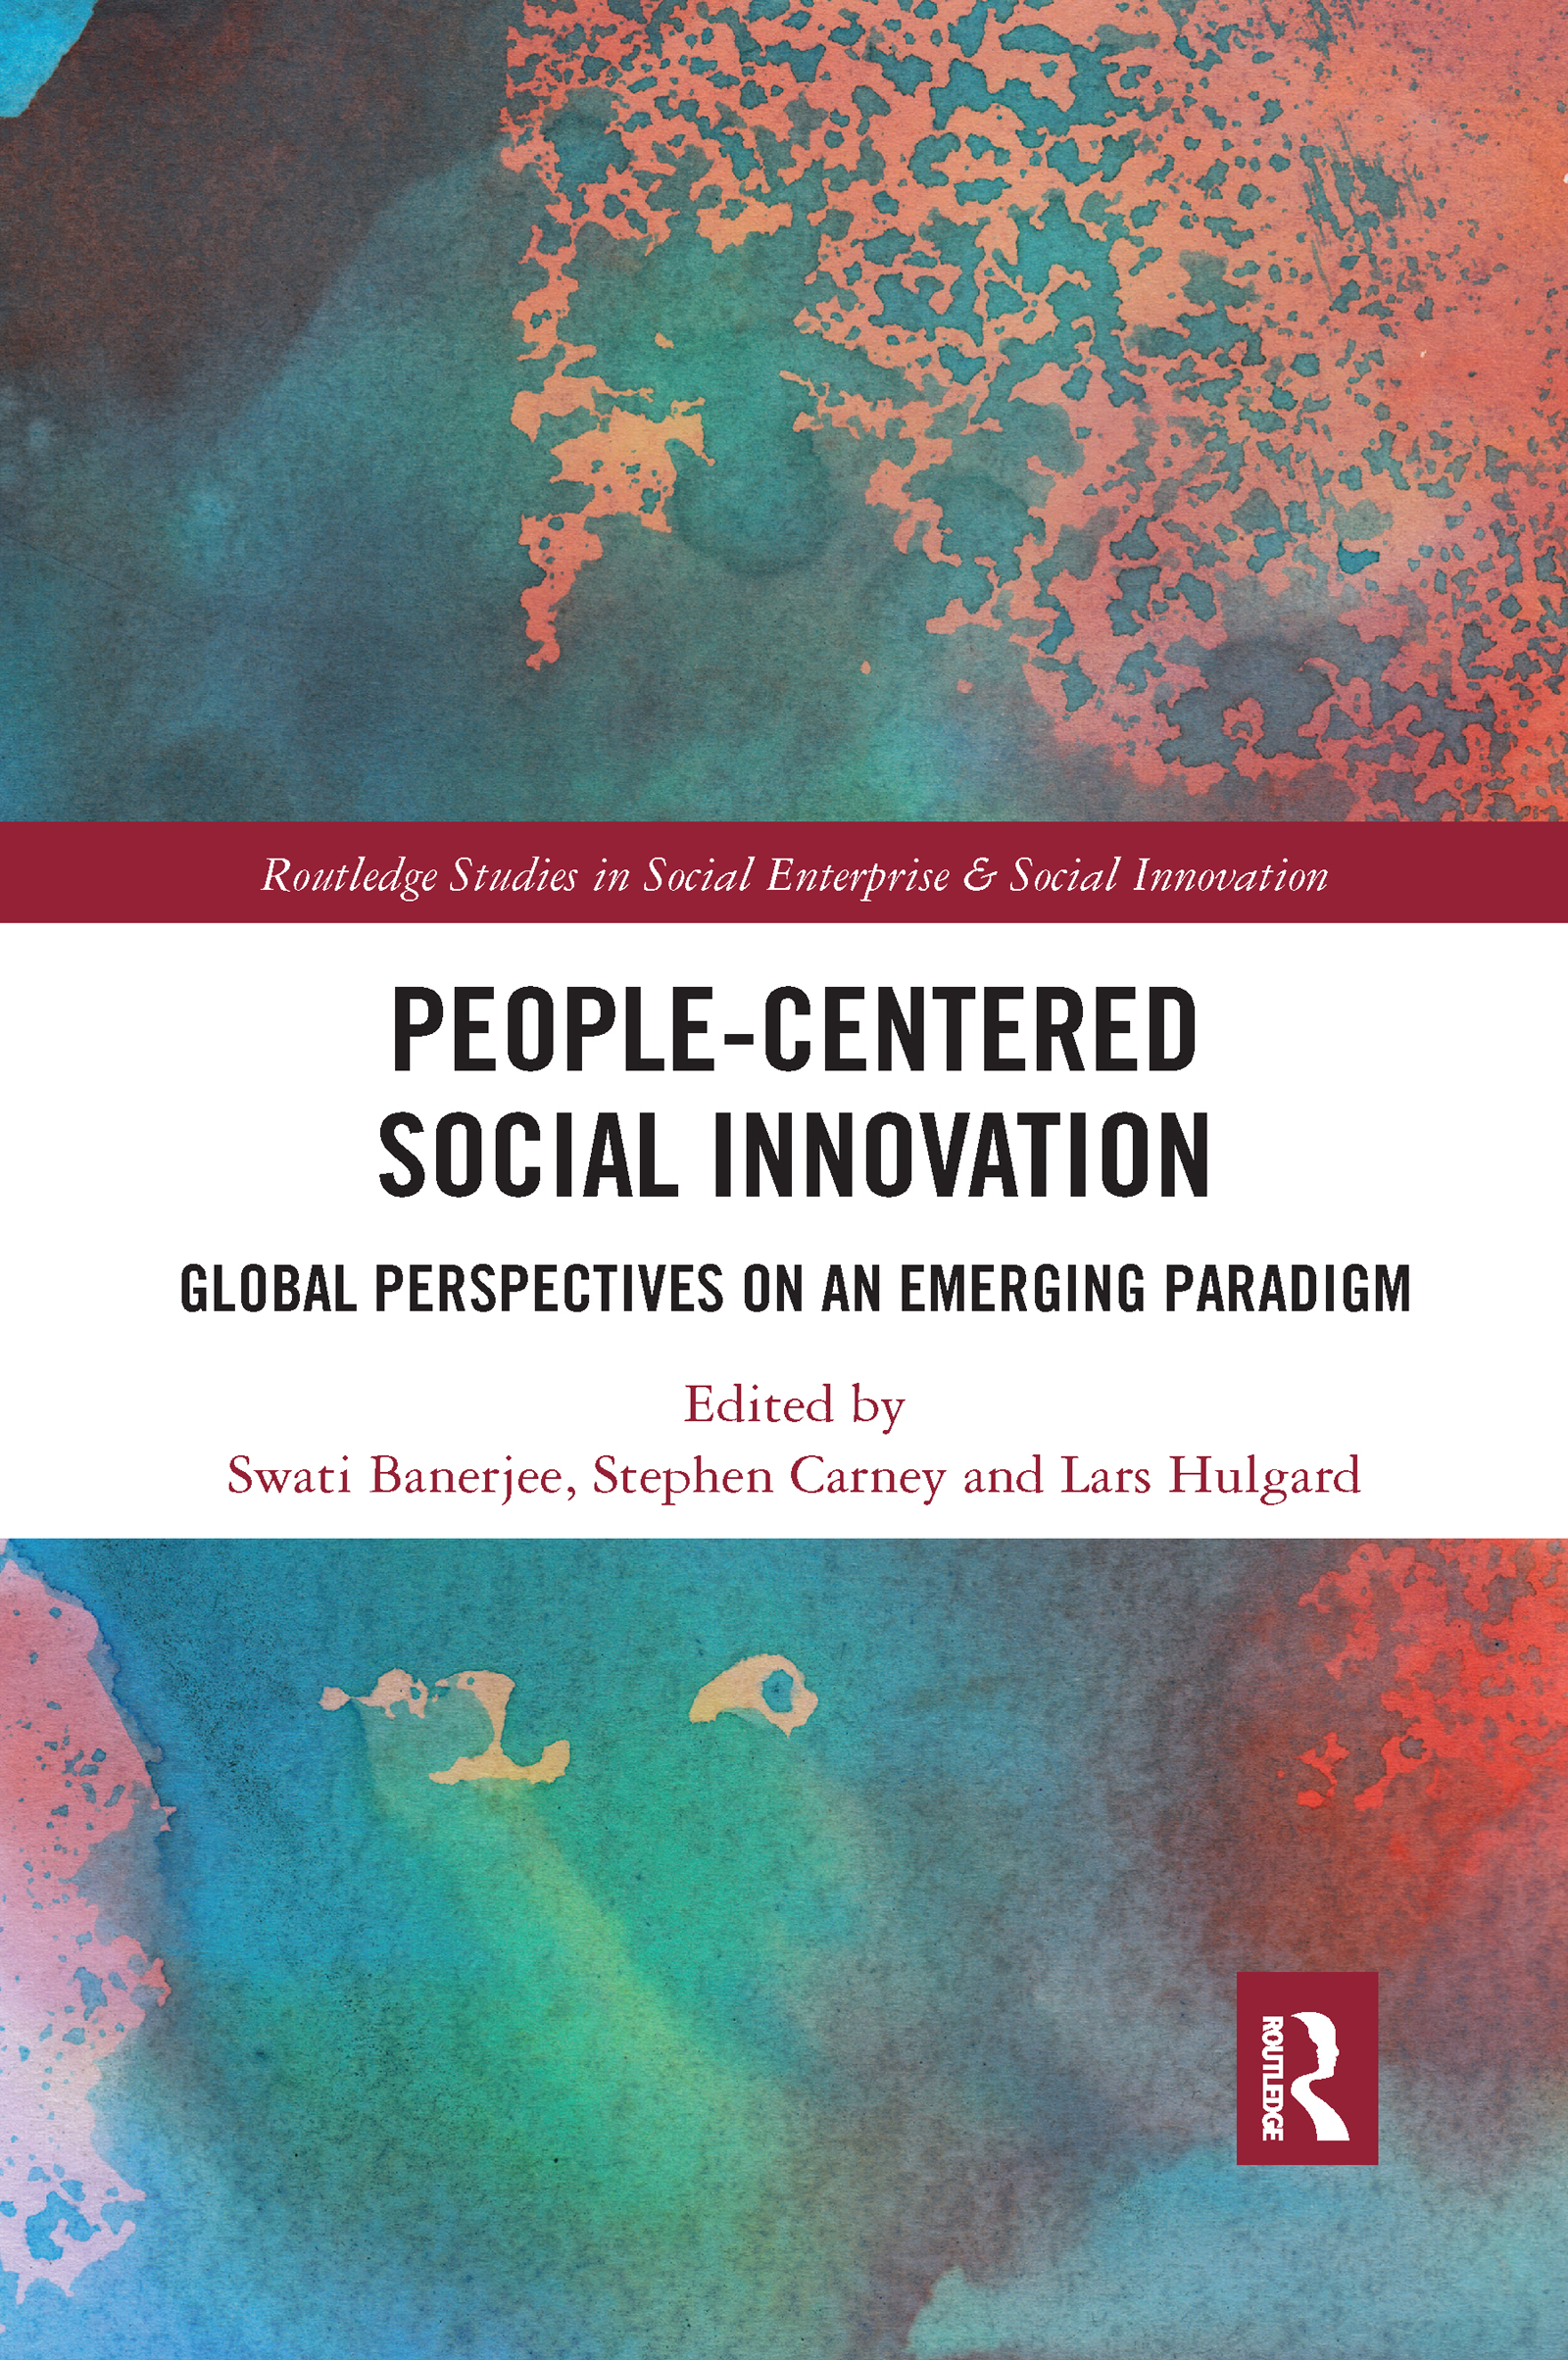 People-Centered Social Innovation